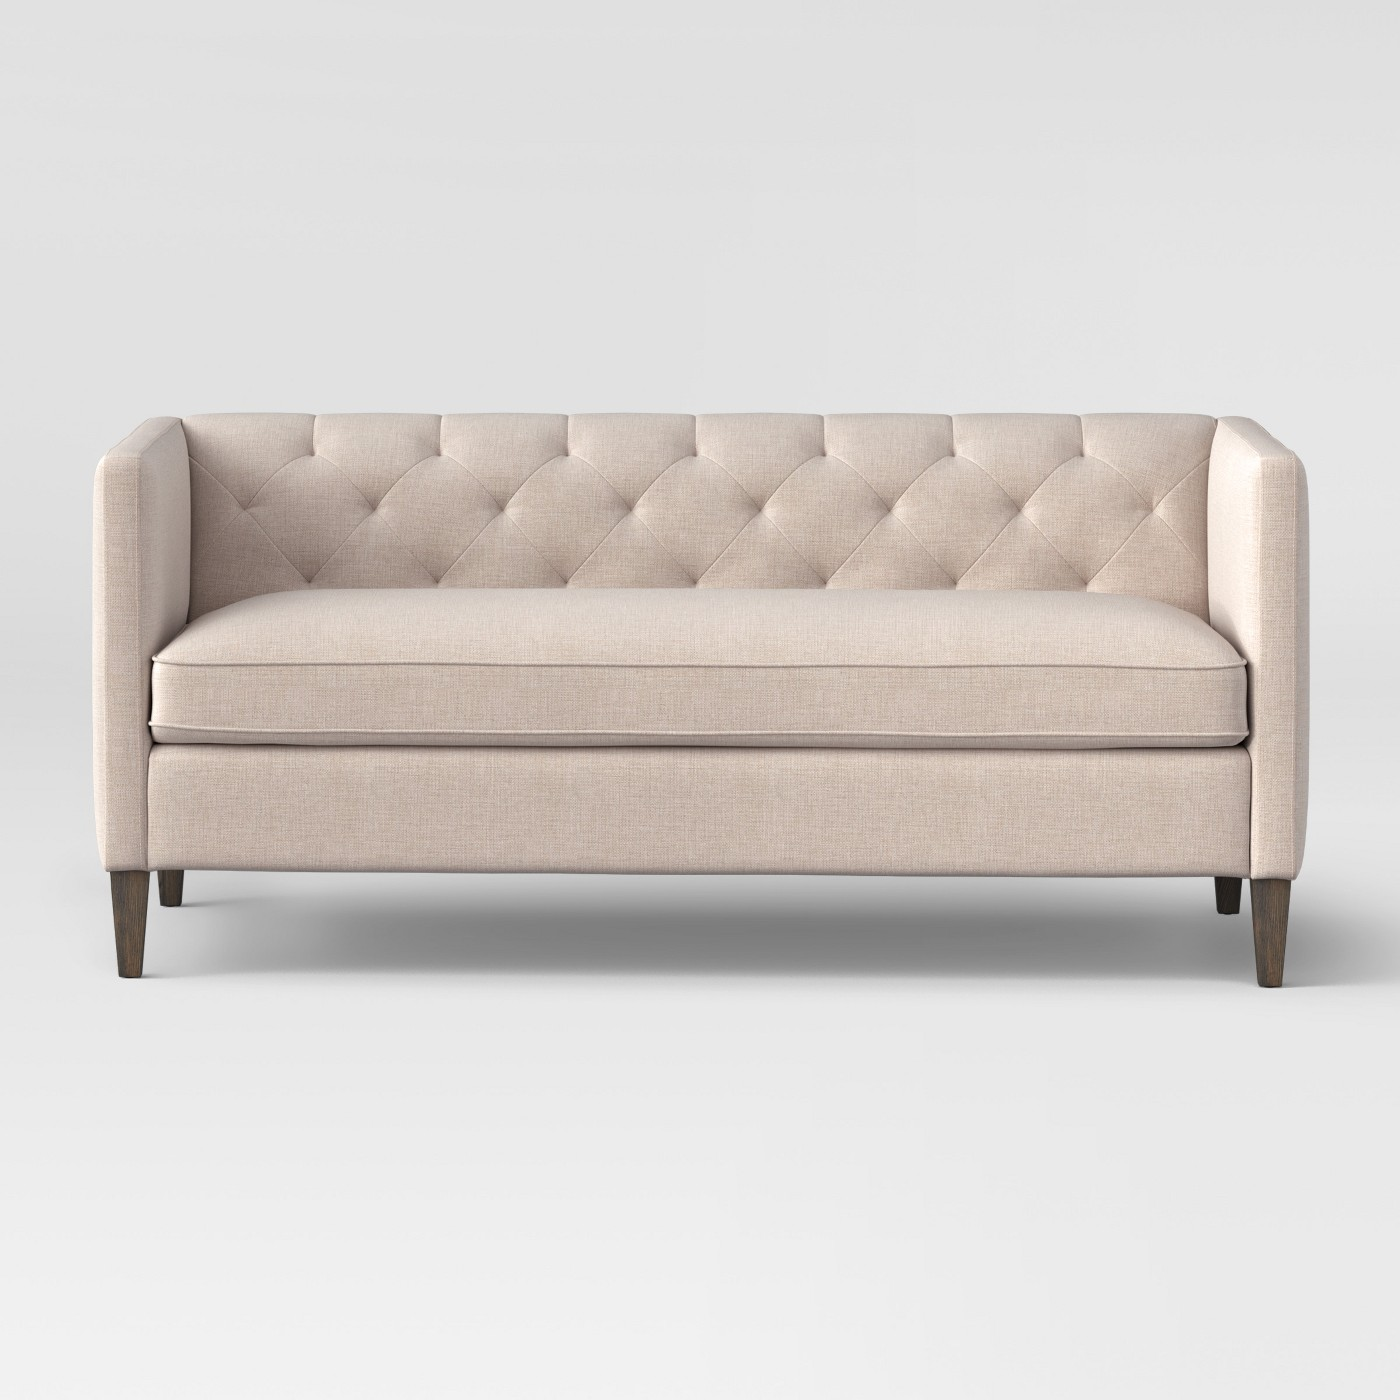 "Holyoke Sofa Linen - Thresholdâ""¢ - image 1 of 12"